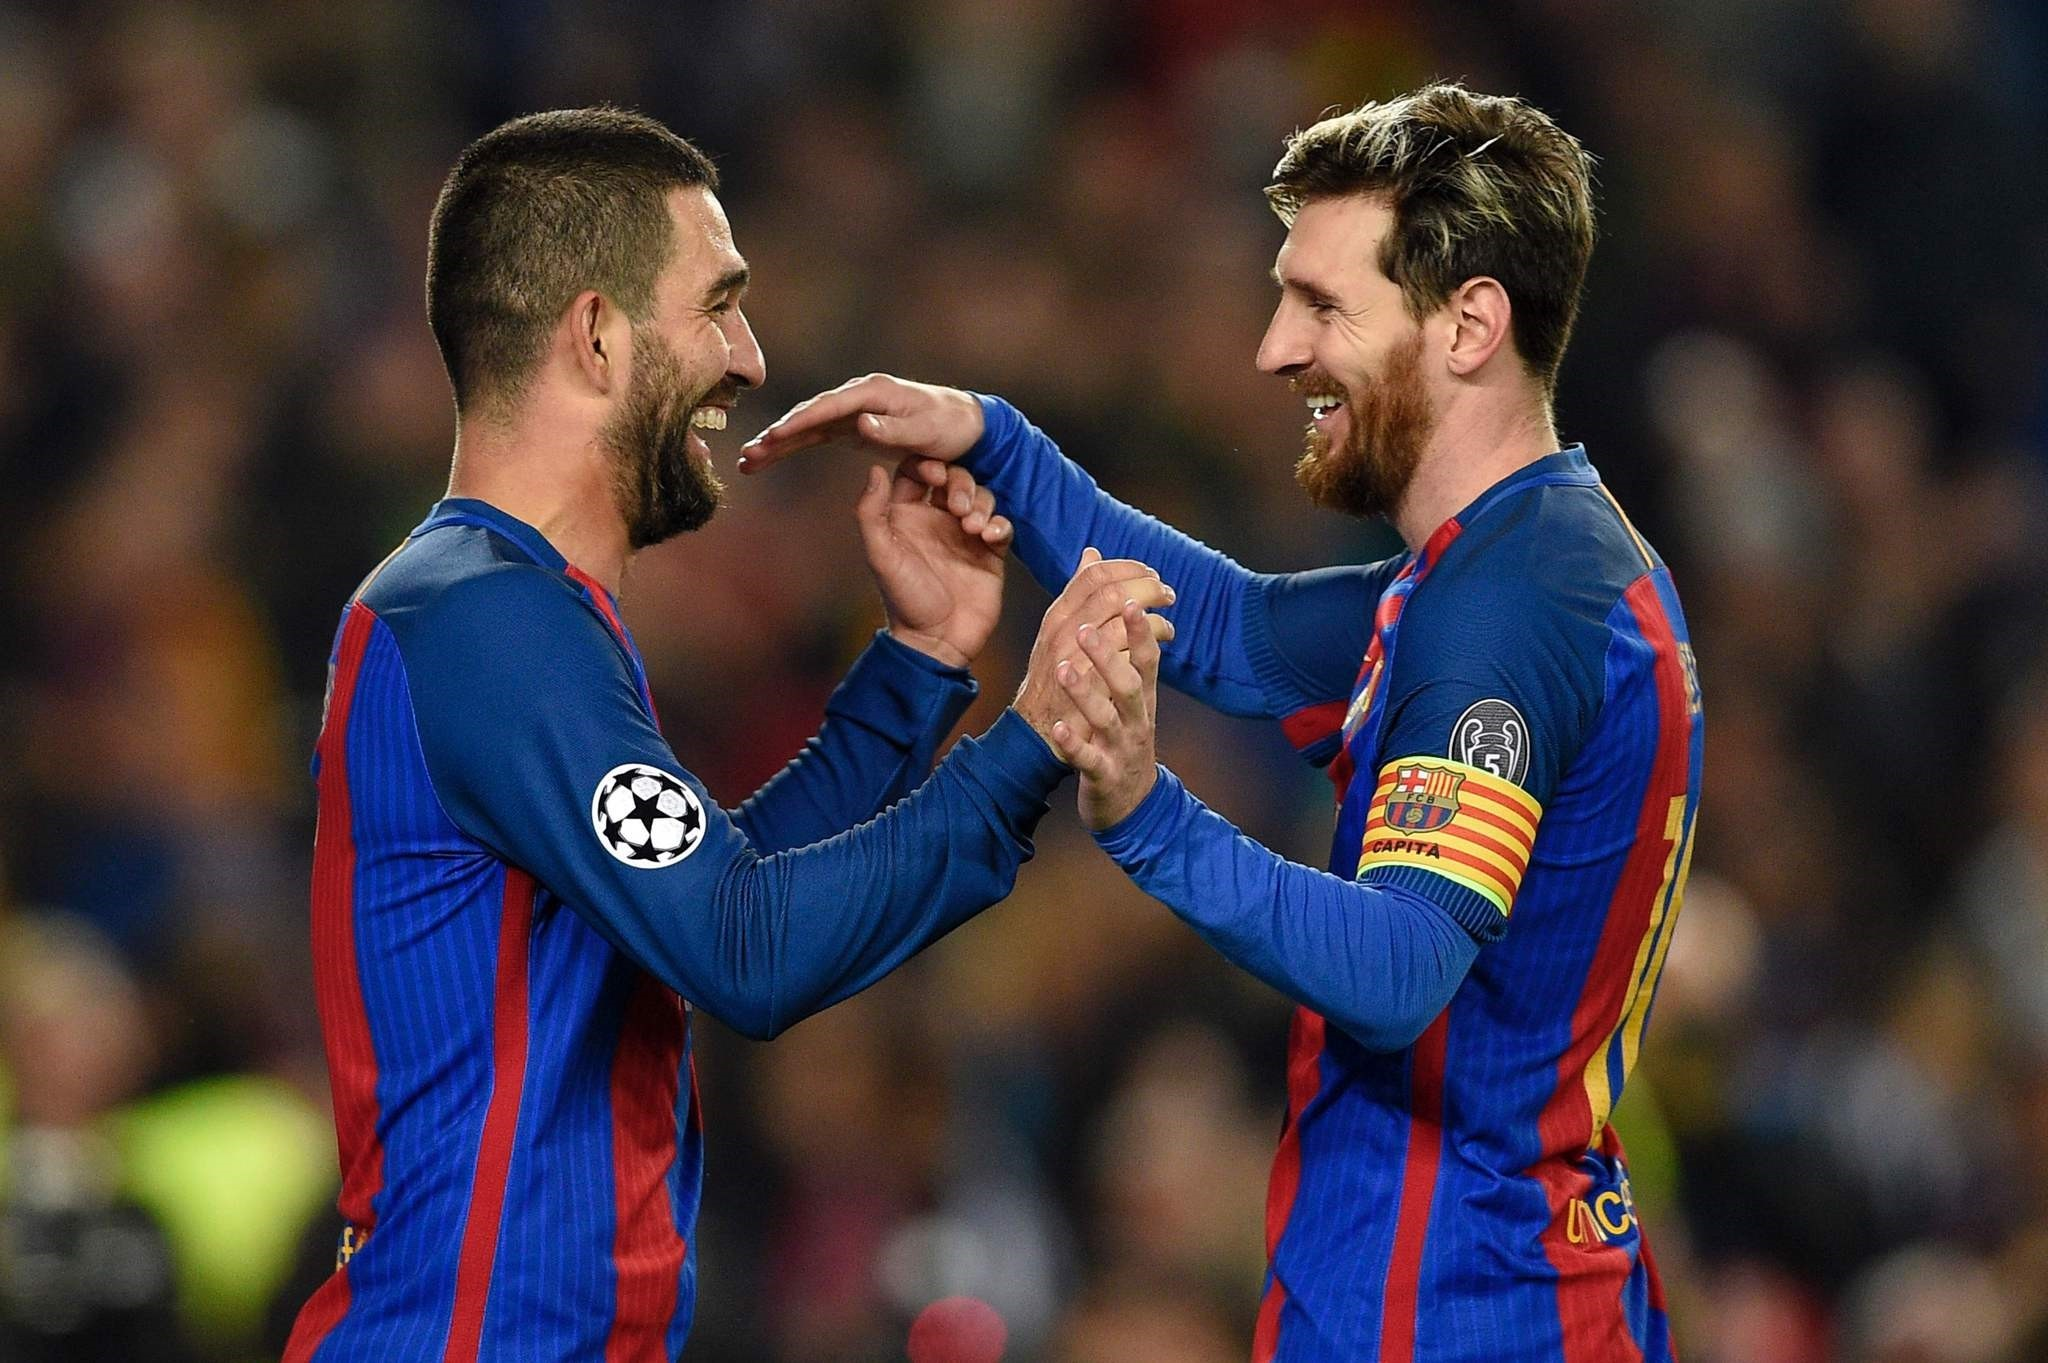 Barcelona's Turkish forward Arda Turan (L) celebrates with Messi after scoring during the UEFA Champions League Group C football match. (AFP Photo)